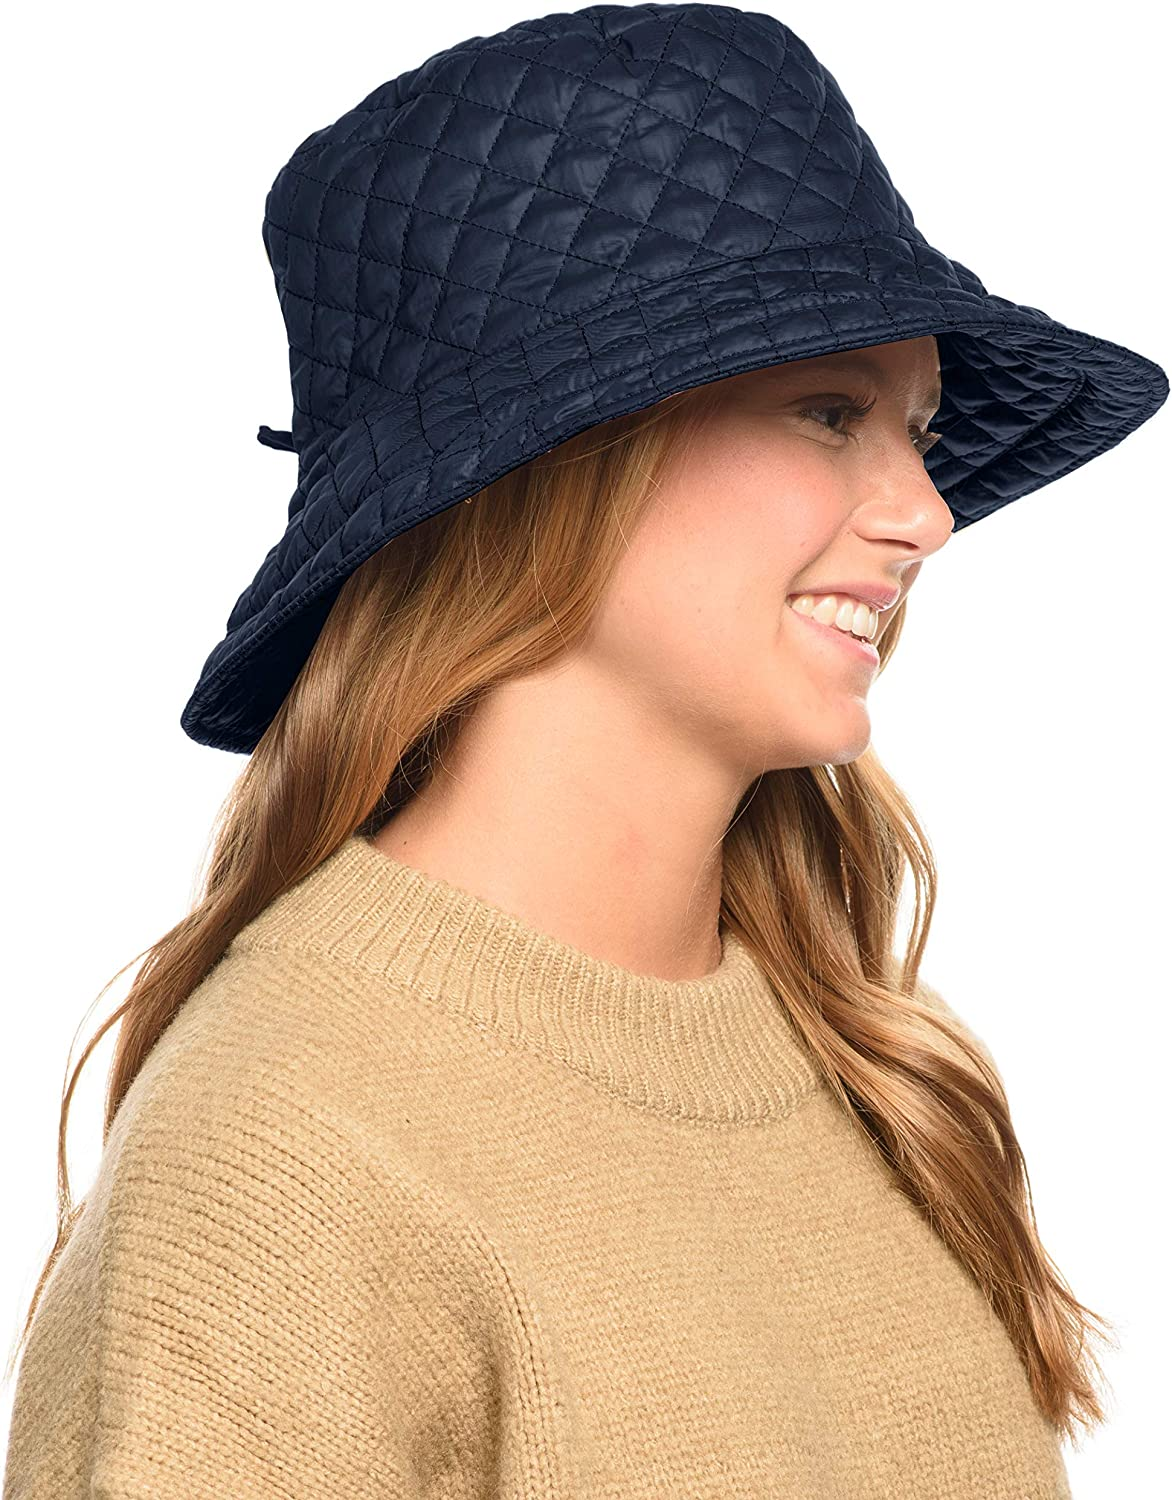 Foldable Water Repellent Quilted Rain Hat w/Adjustable Drawstring, Bucket Cap